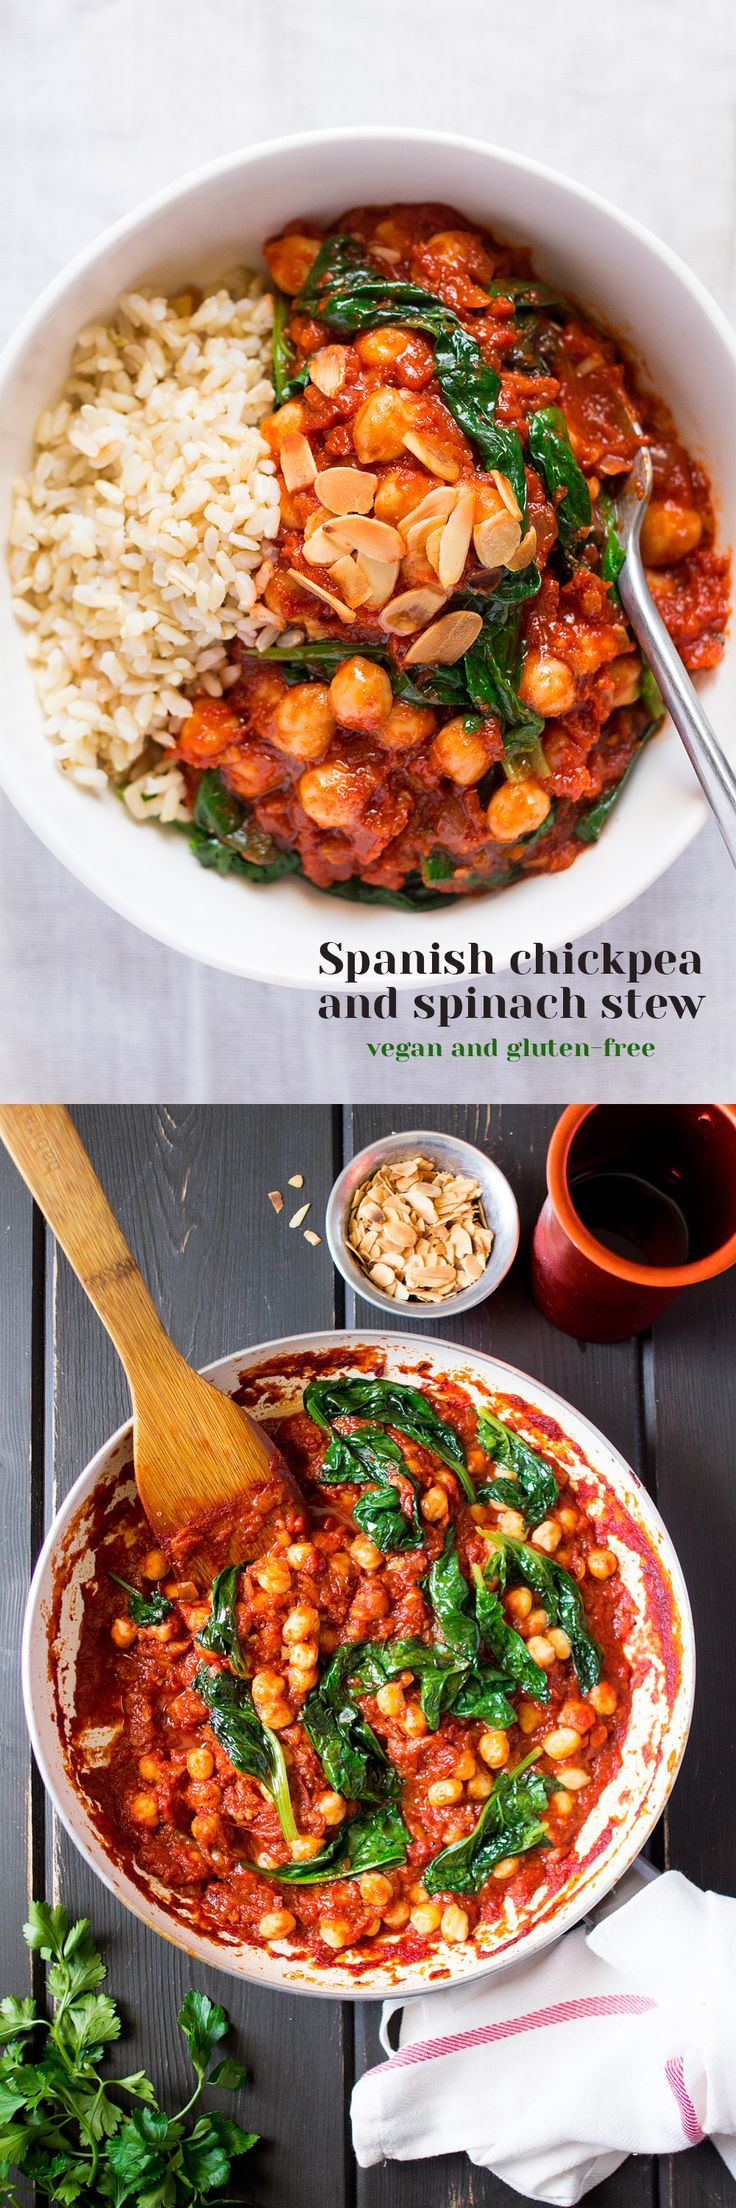 Spanish chickpea and spinach stew is a delicious, filling, vegan and gluten-free main meal that is easy and quick to make.